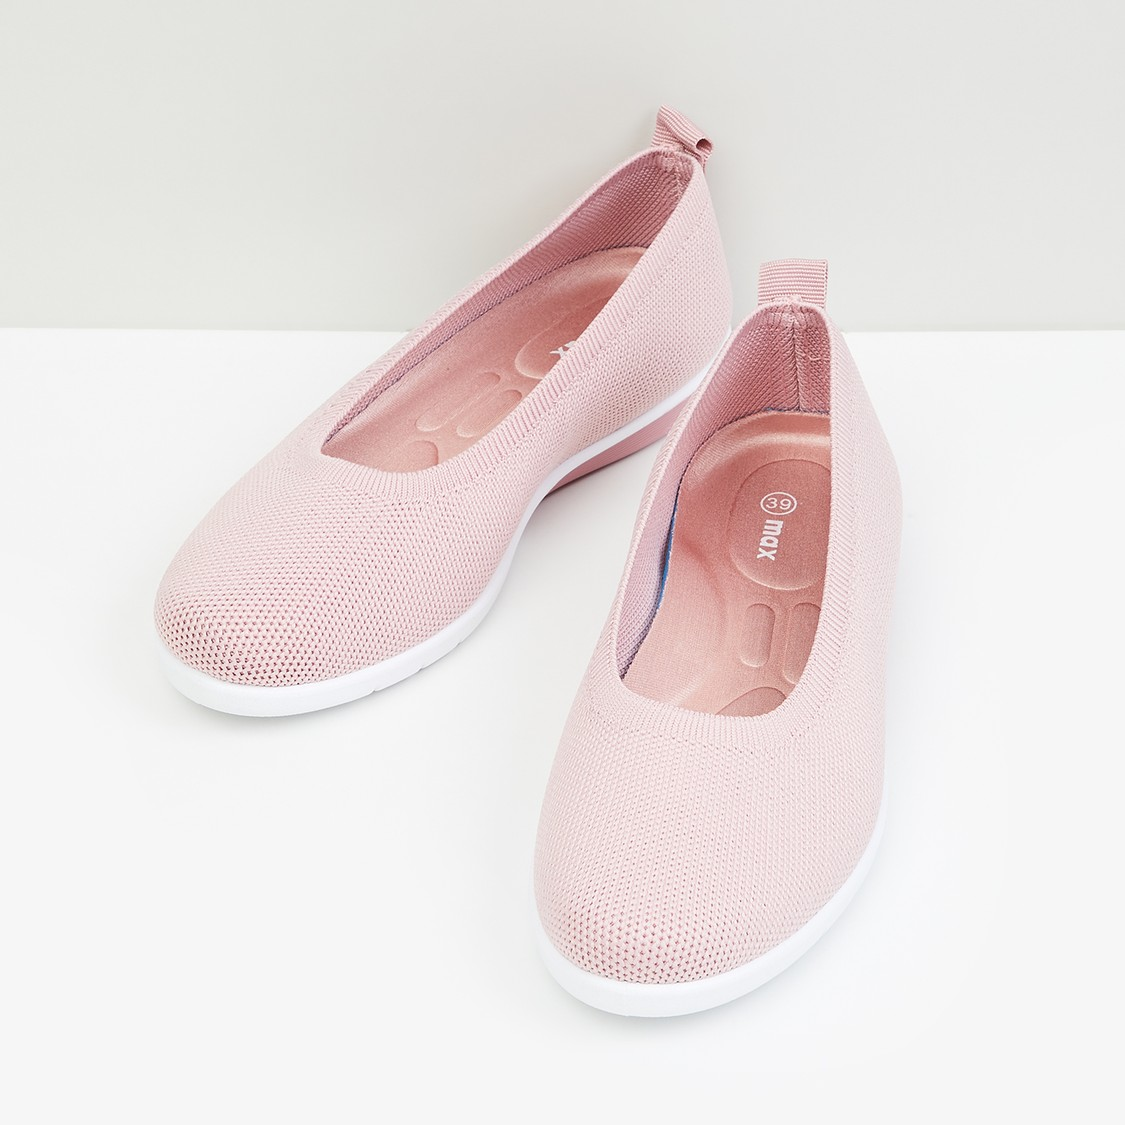 MAX Textured Slip-On Canvas Shoes